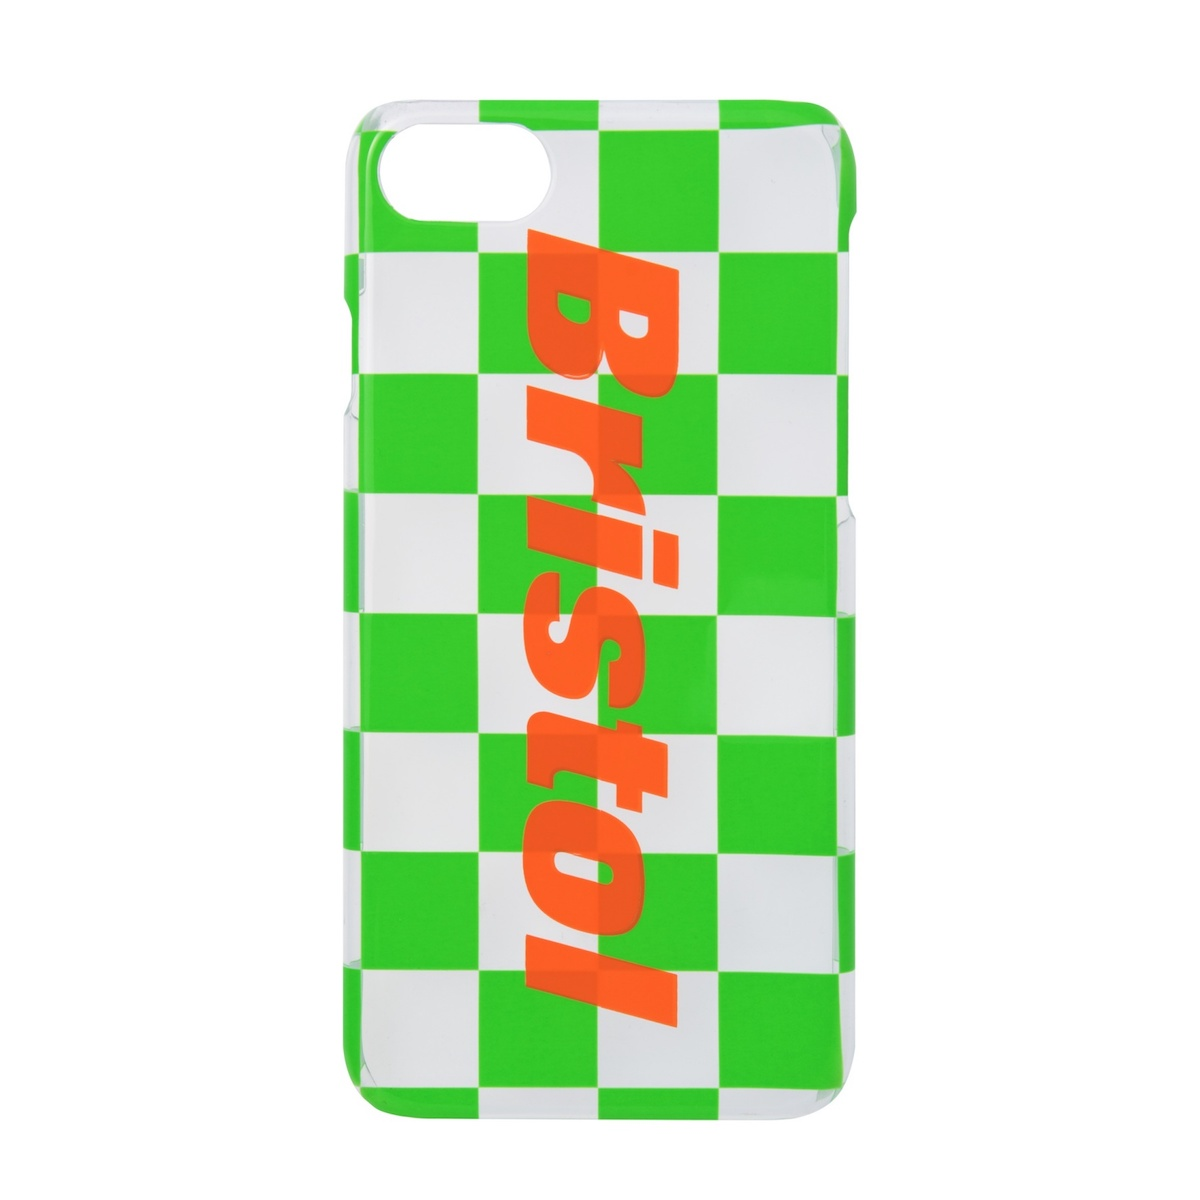 F.C.Real Bristol / BRISTOL PHONE CASE (for iPhone 6/7/8) -Green